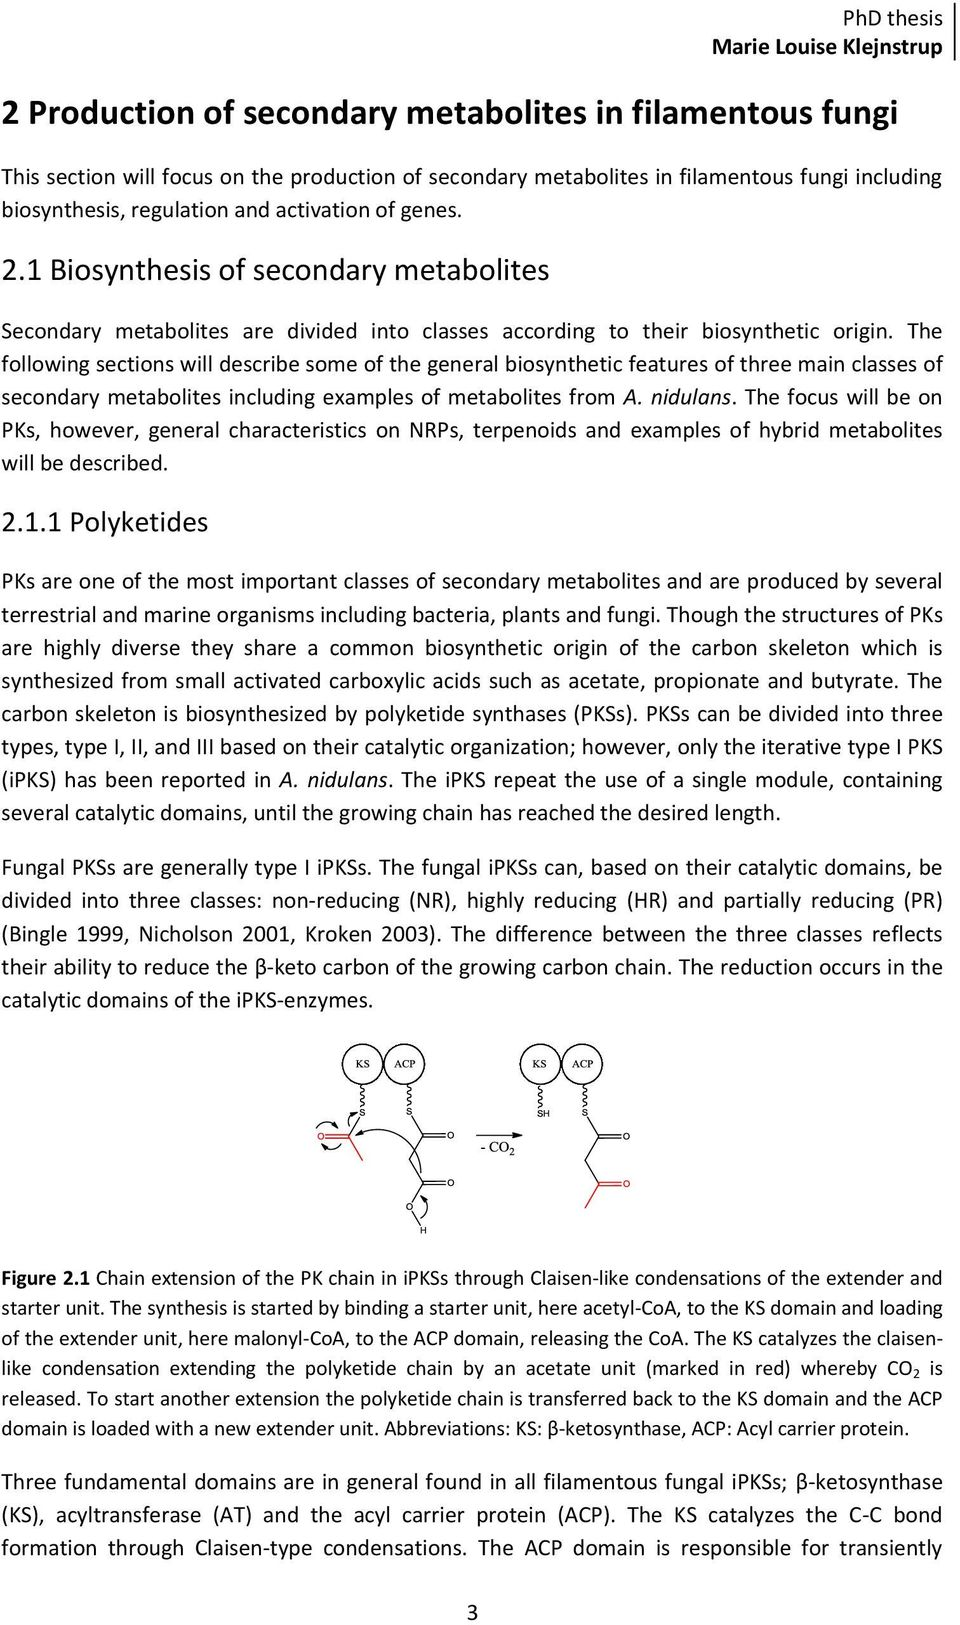 The following sections will describe some of the general biosynthetic features of three main classes of secondary metabolites including examples of metabolites from A. nidulans.